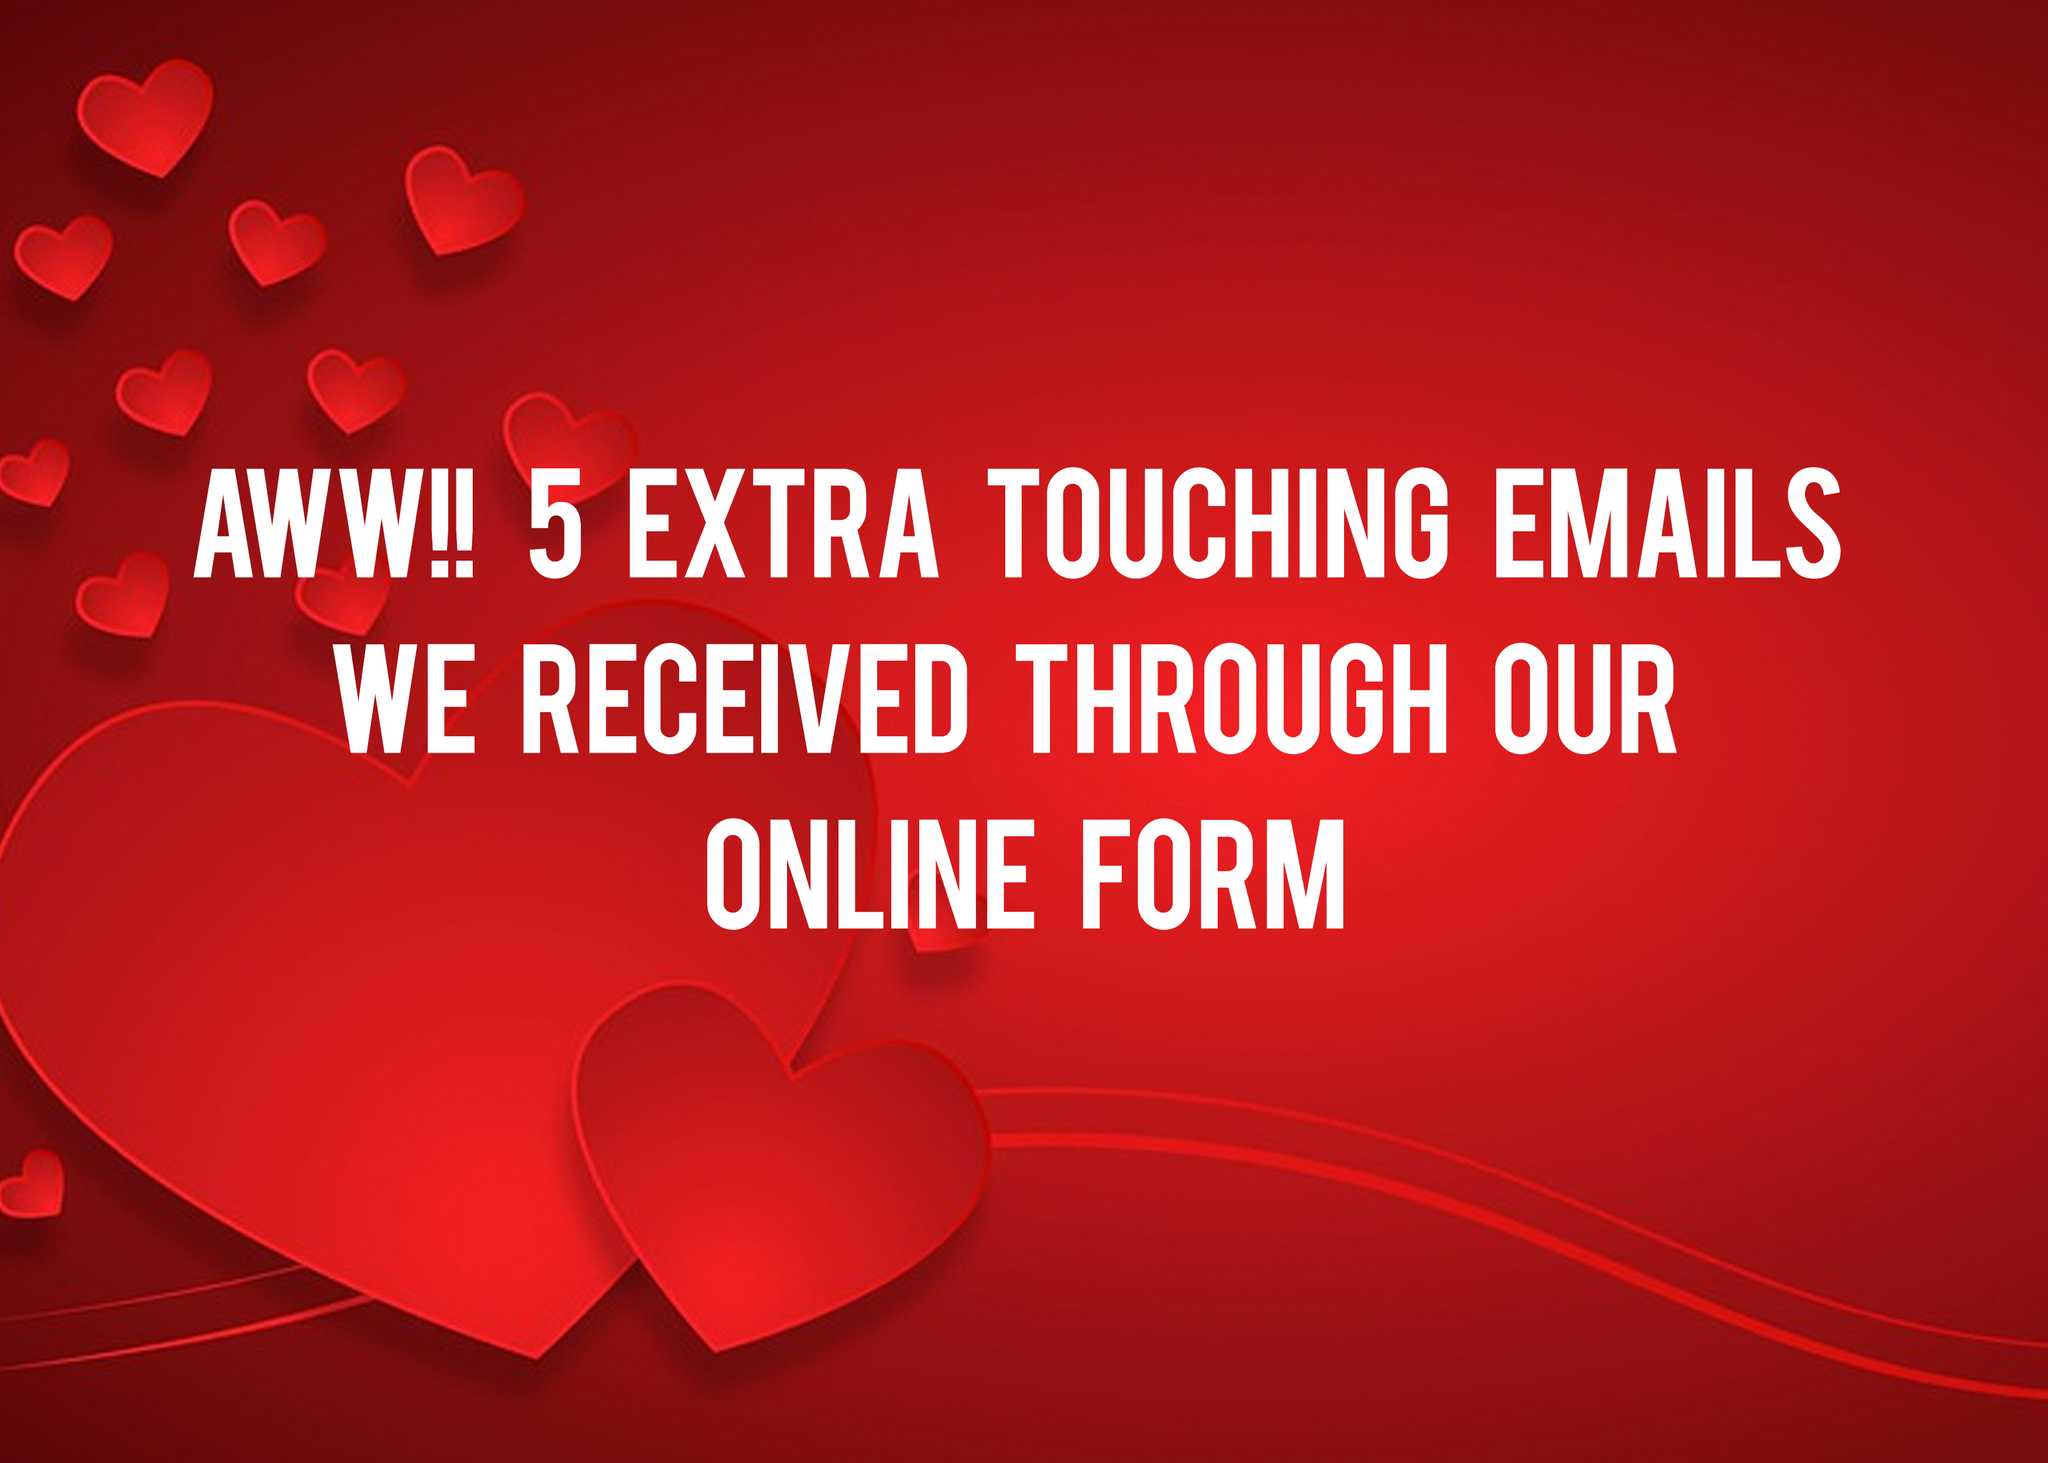 5 extra touching emails we received through our online form